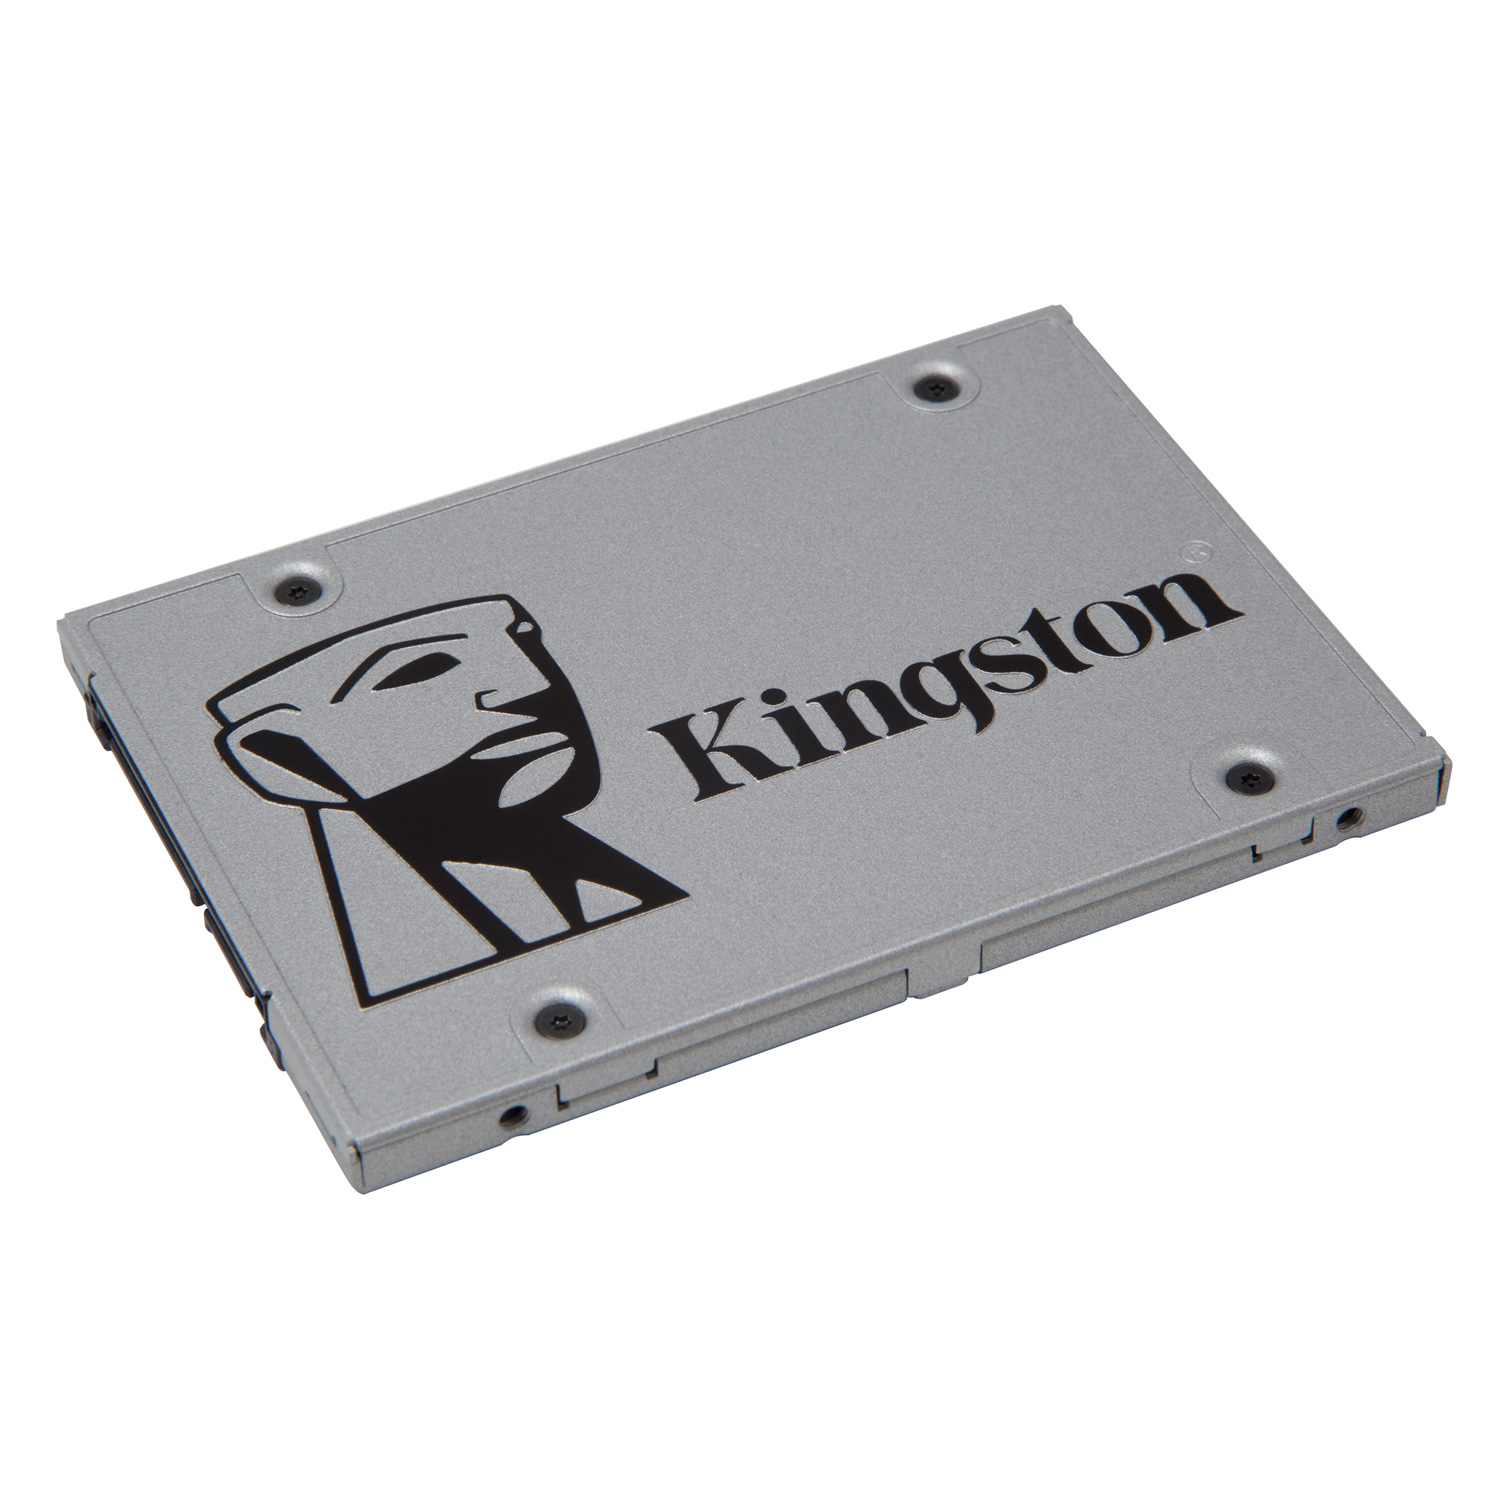 "Disque SSD Kingston SSD UV400 120 Go SSD 120 Go 2.5"" 7mm Serial ATA 6Gb/s"